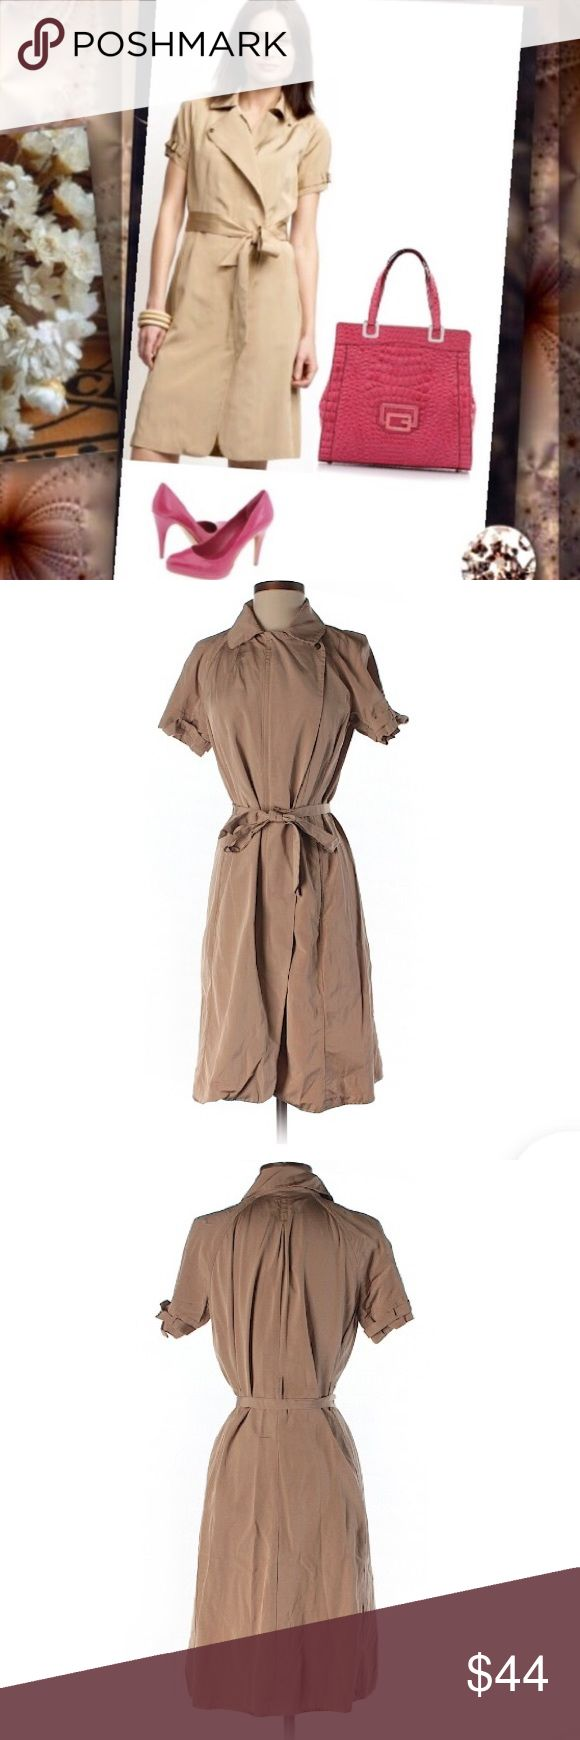 Banana Republic Tan Safari Trench Coat Trenchdress This is a BR size 4 khaki Trench dress. Super cute and the material is great! The left arm is missing a metal loop, as shown in the photo what is supposed to be there and what is missing, however the dress still looks great. There is a small barely noticeable stain on the front of the dress. There's a hidden Zipper and two still sewn up hidden pockets. Tie waist belt. Banana Republic Dresses Midi